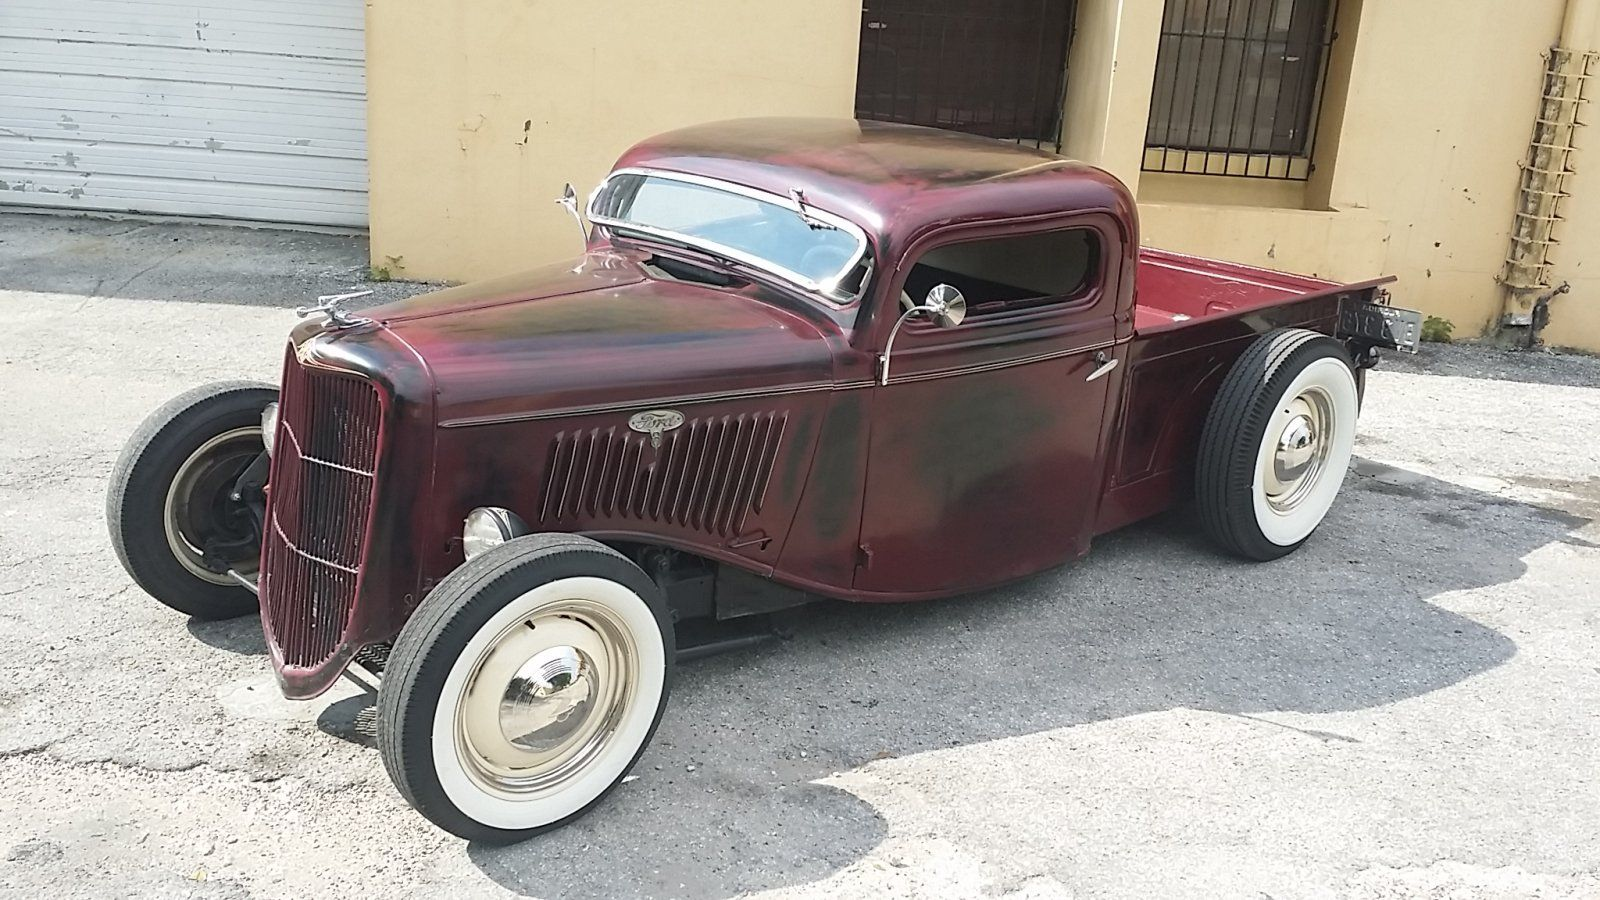 1935 Chopped Ford Pick Up The H A M B Hot Rod Pickup Hot Rods Cars Muscle Hot Rod Trucks